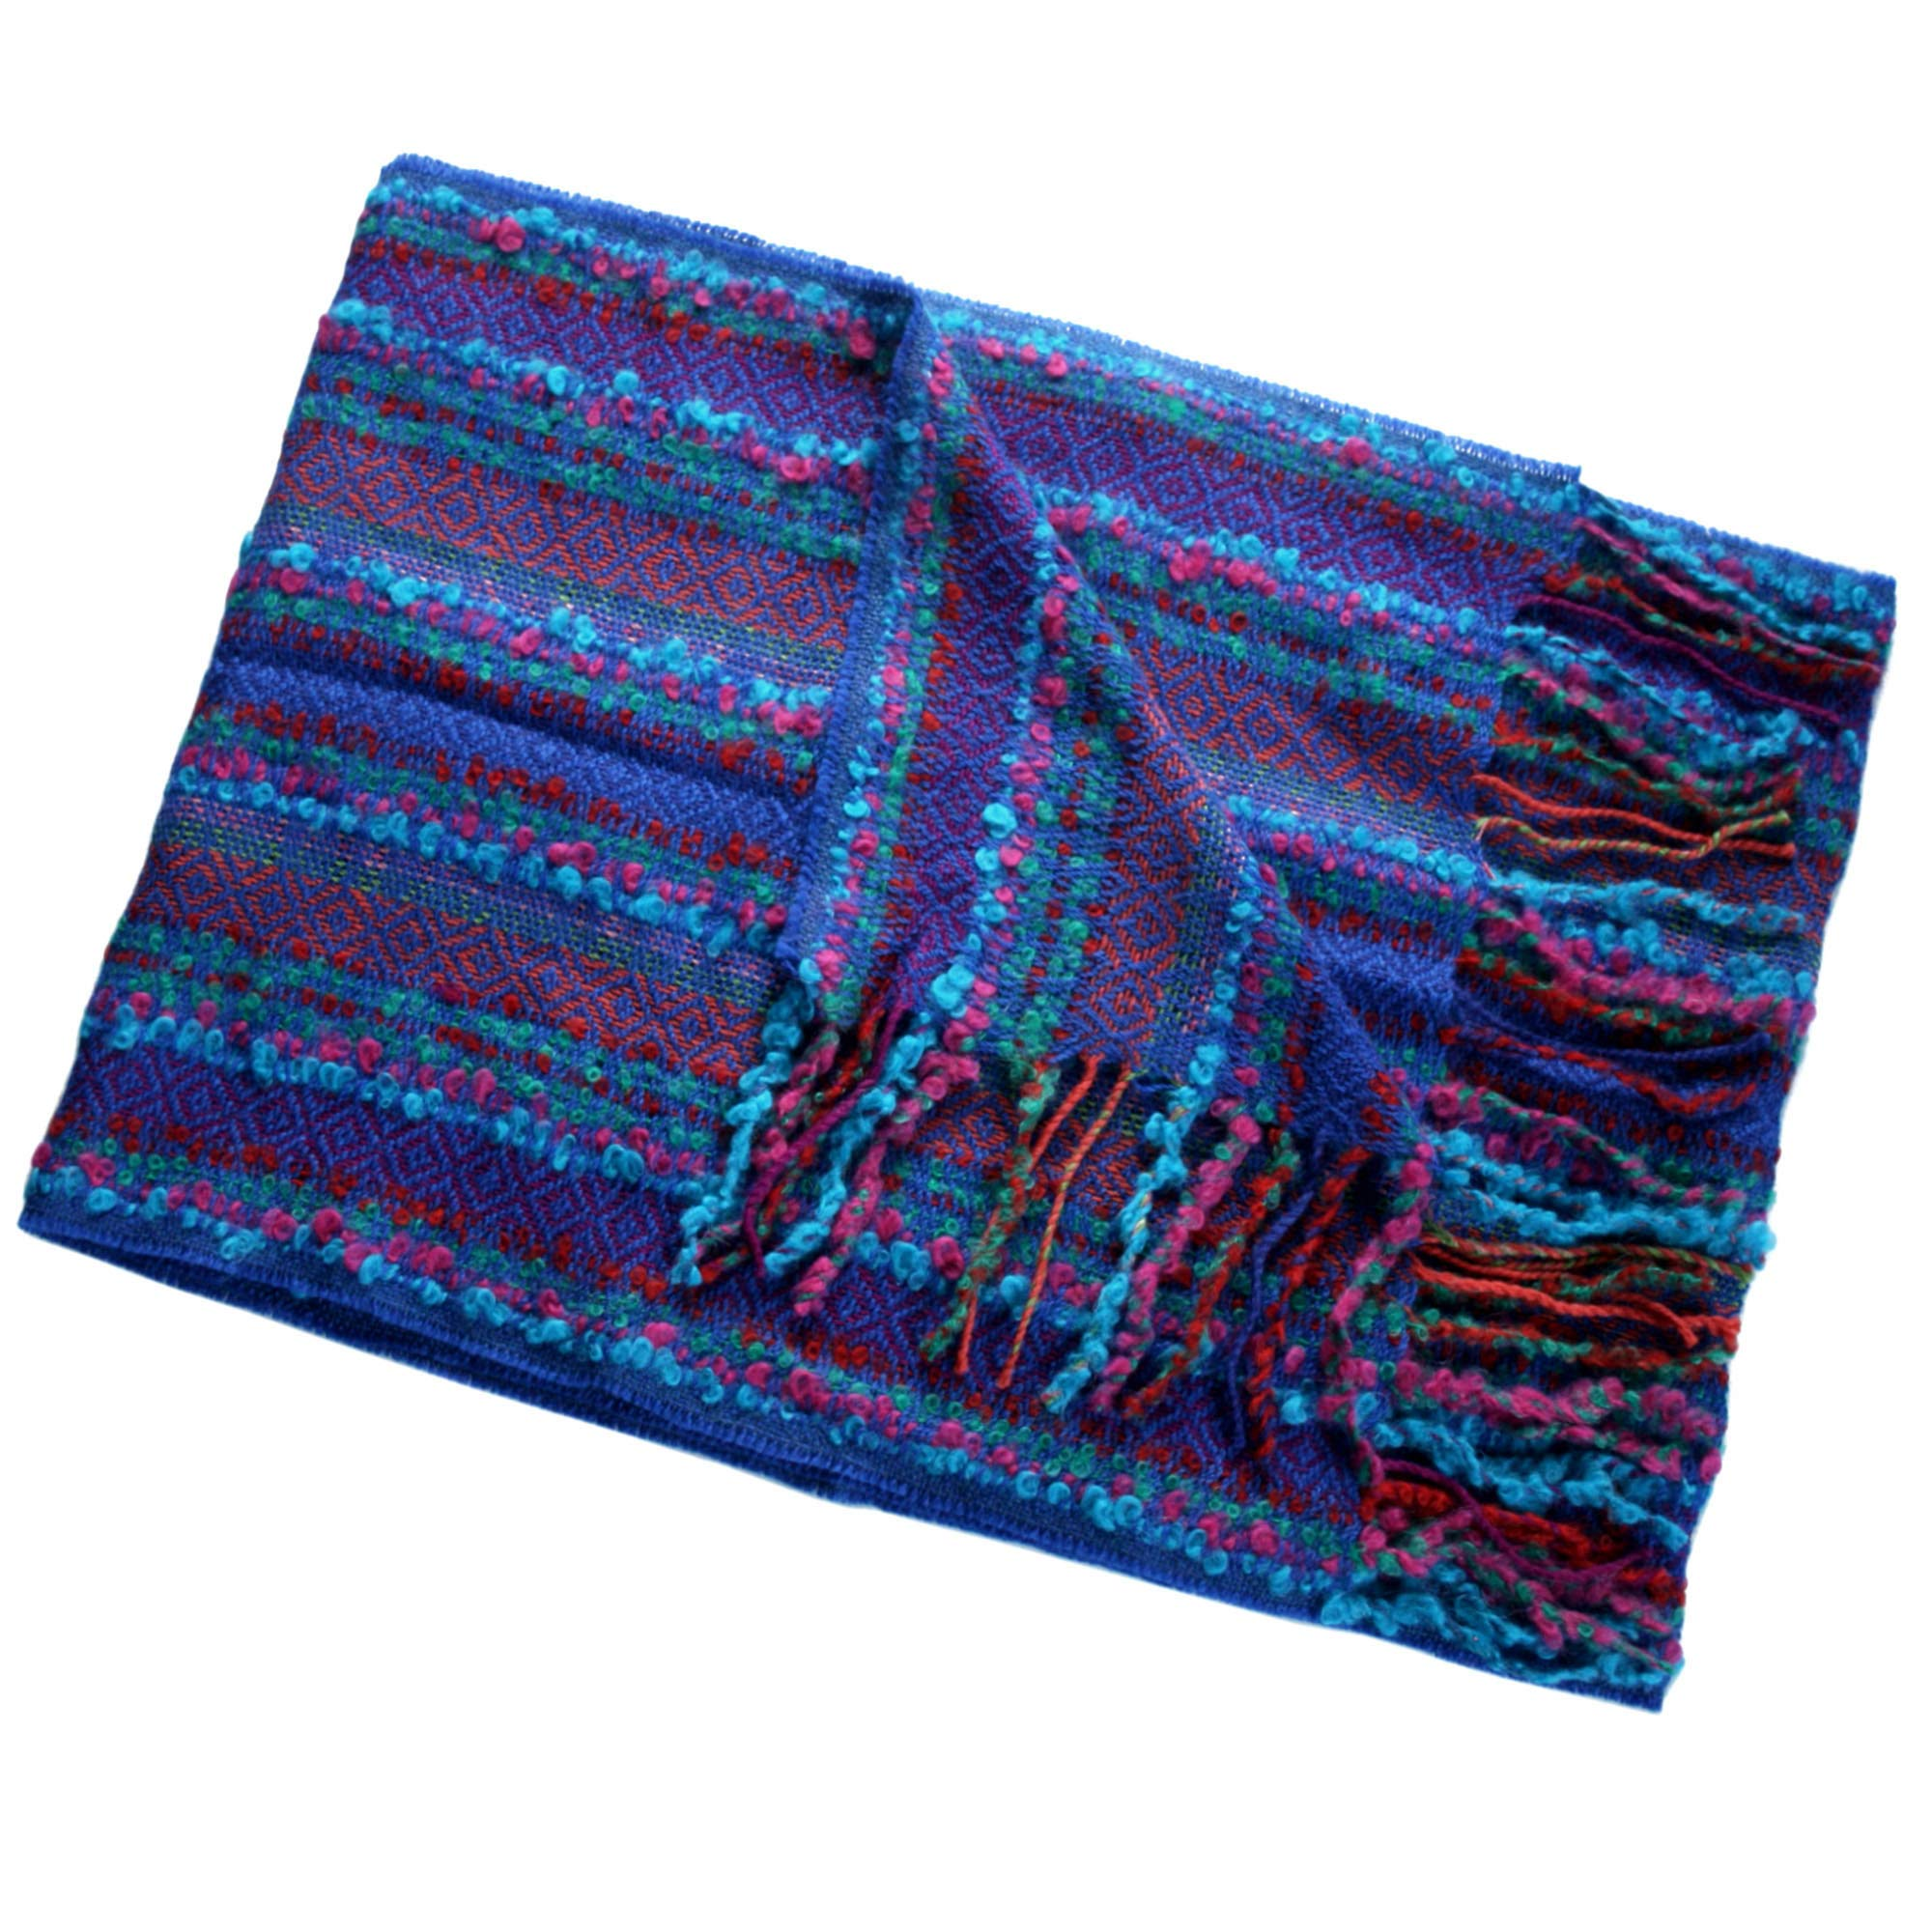 100% Baby Alpaca Woven Scarf ~ Natural Fiber Wrap for Women and Men~ Blue/Multicolor